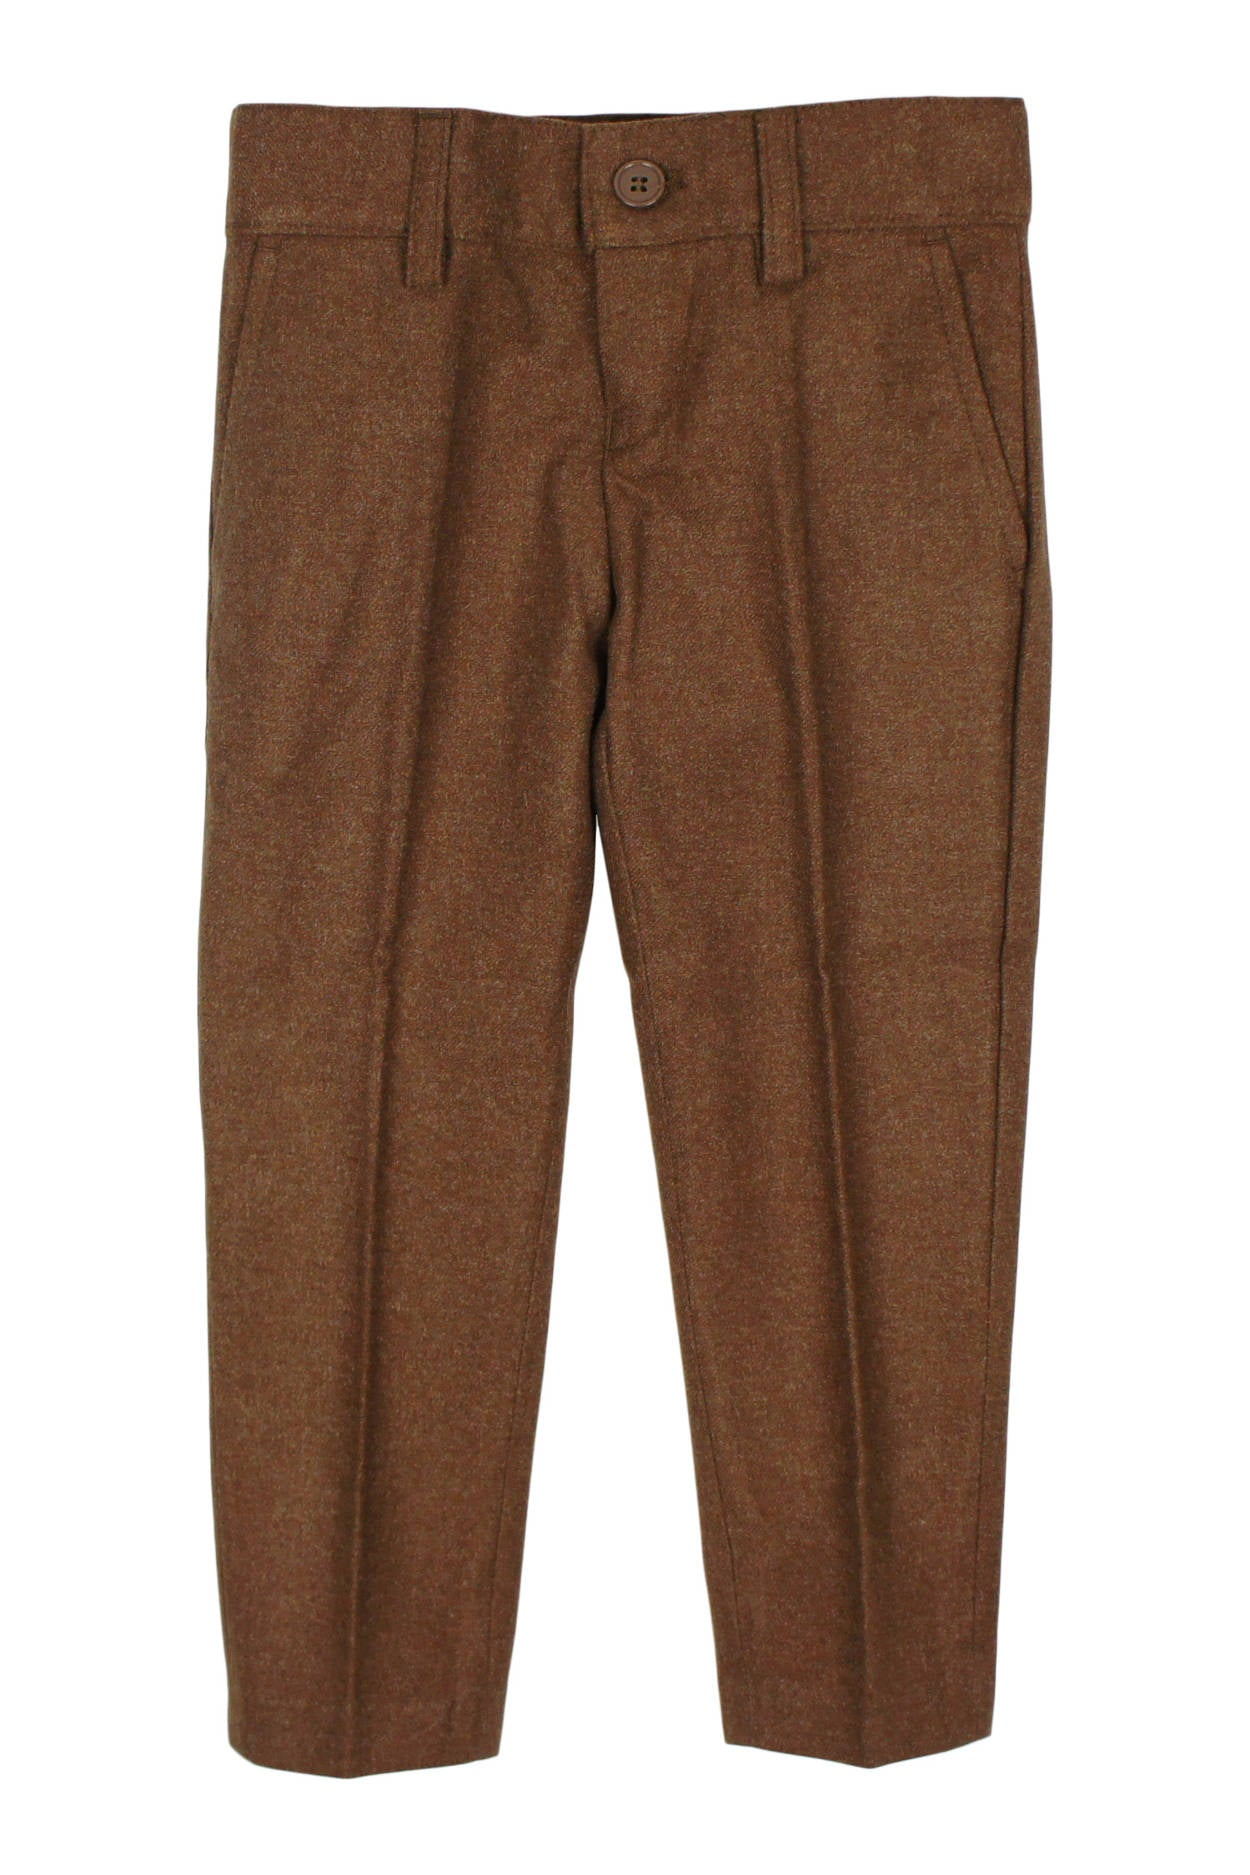 Armando Boys' Wool Look Slim Fit Camel Pant